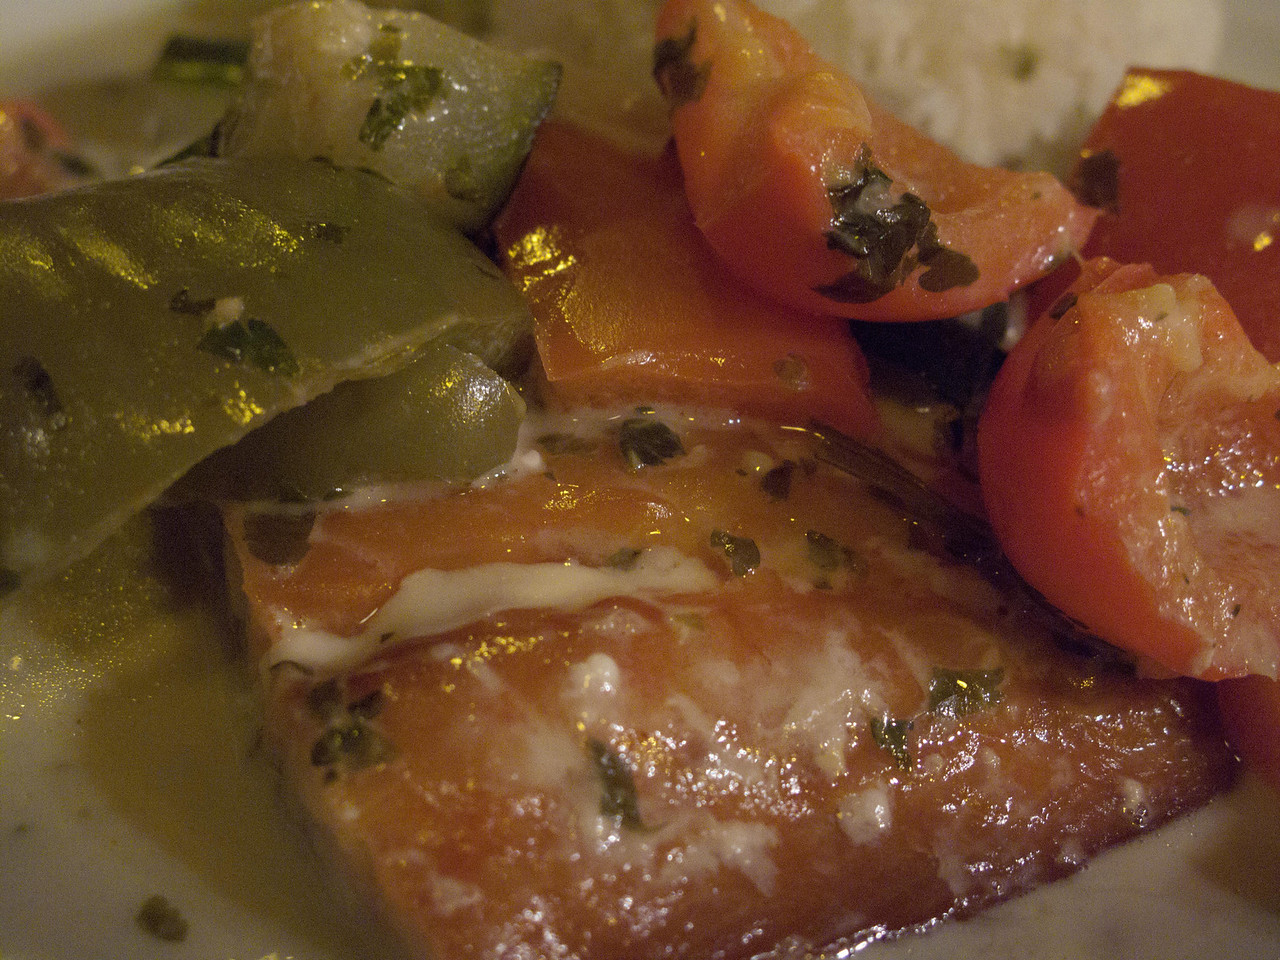 Haddock with peppers and other vegetables, basking in a coconut sauce, at Diet Ethique, rue de Chambery, Paris